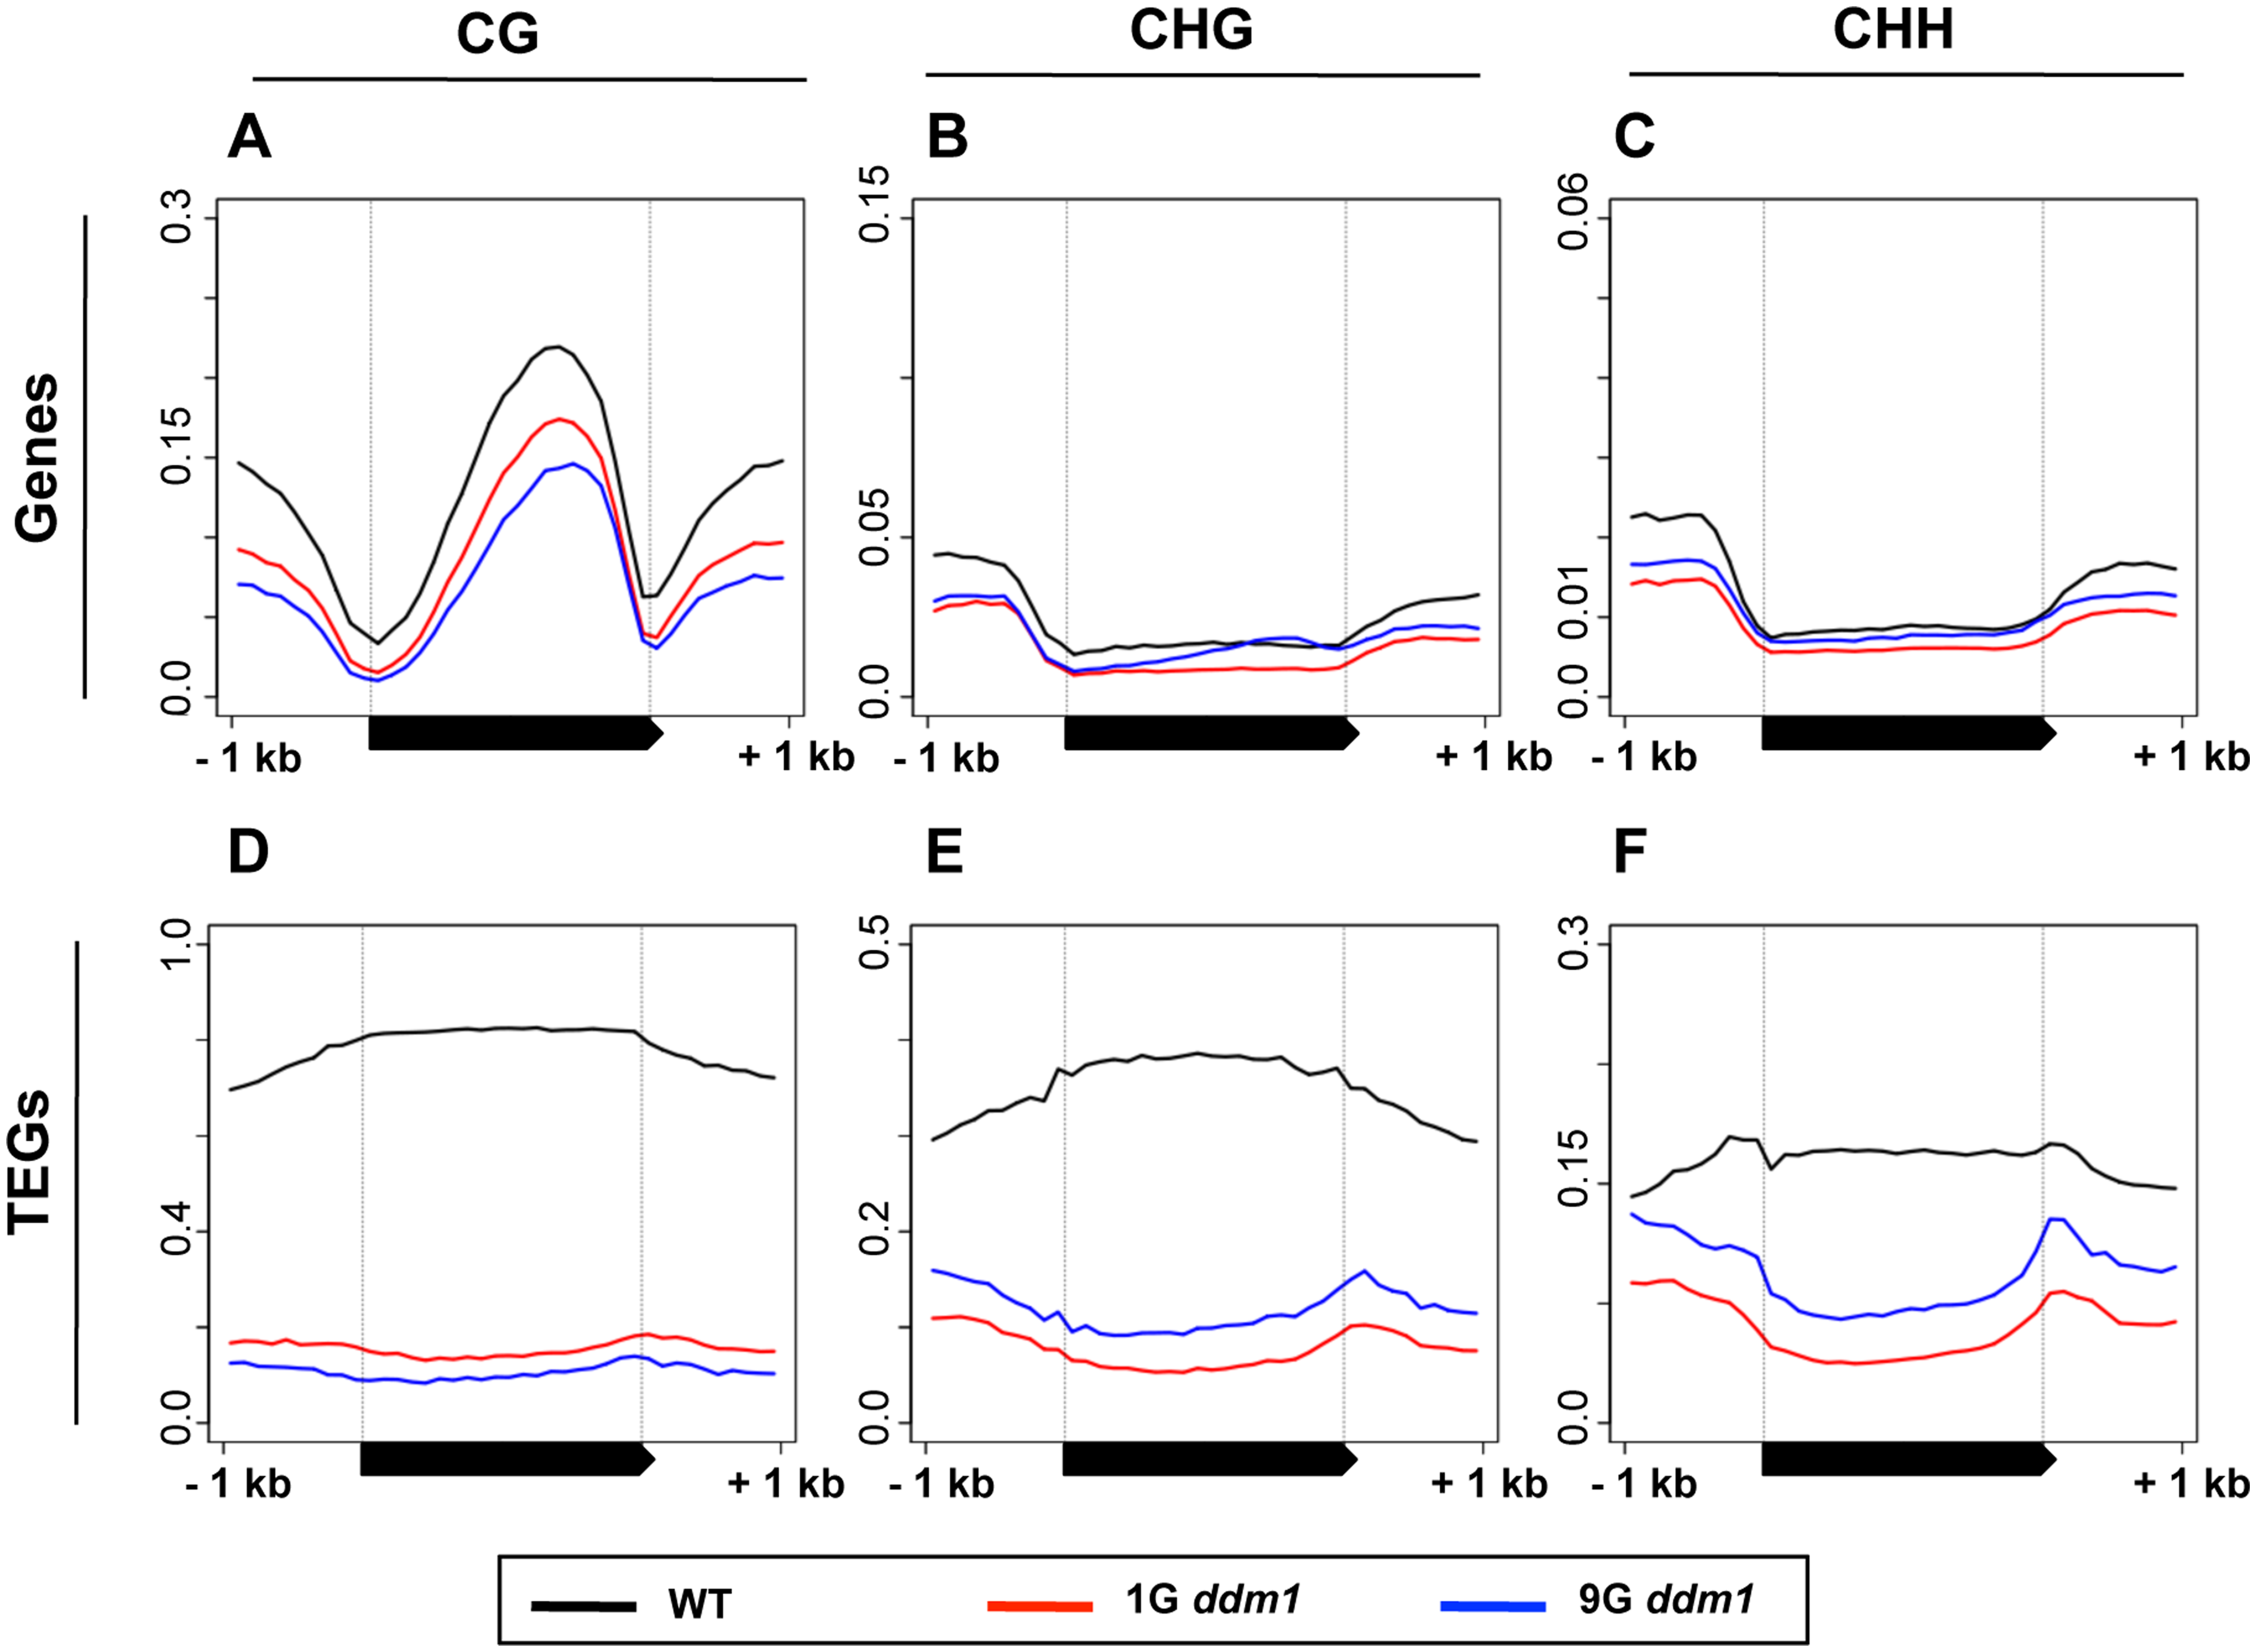 DNA methylation in <i>ddm1</i> mutants before and after repeated self-pollination.